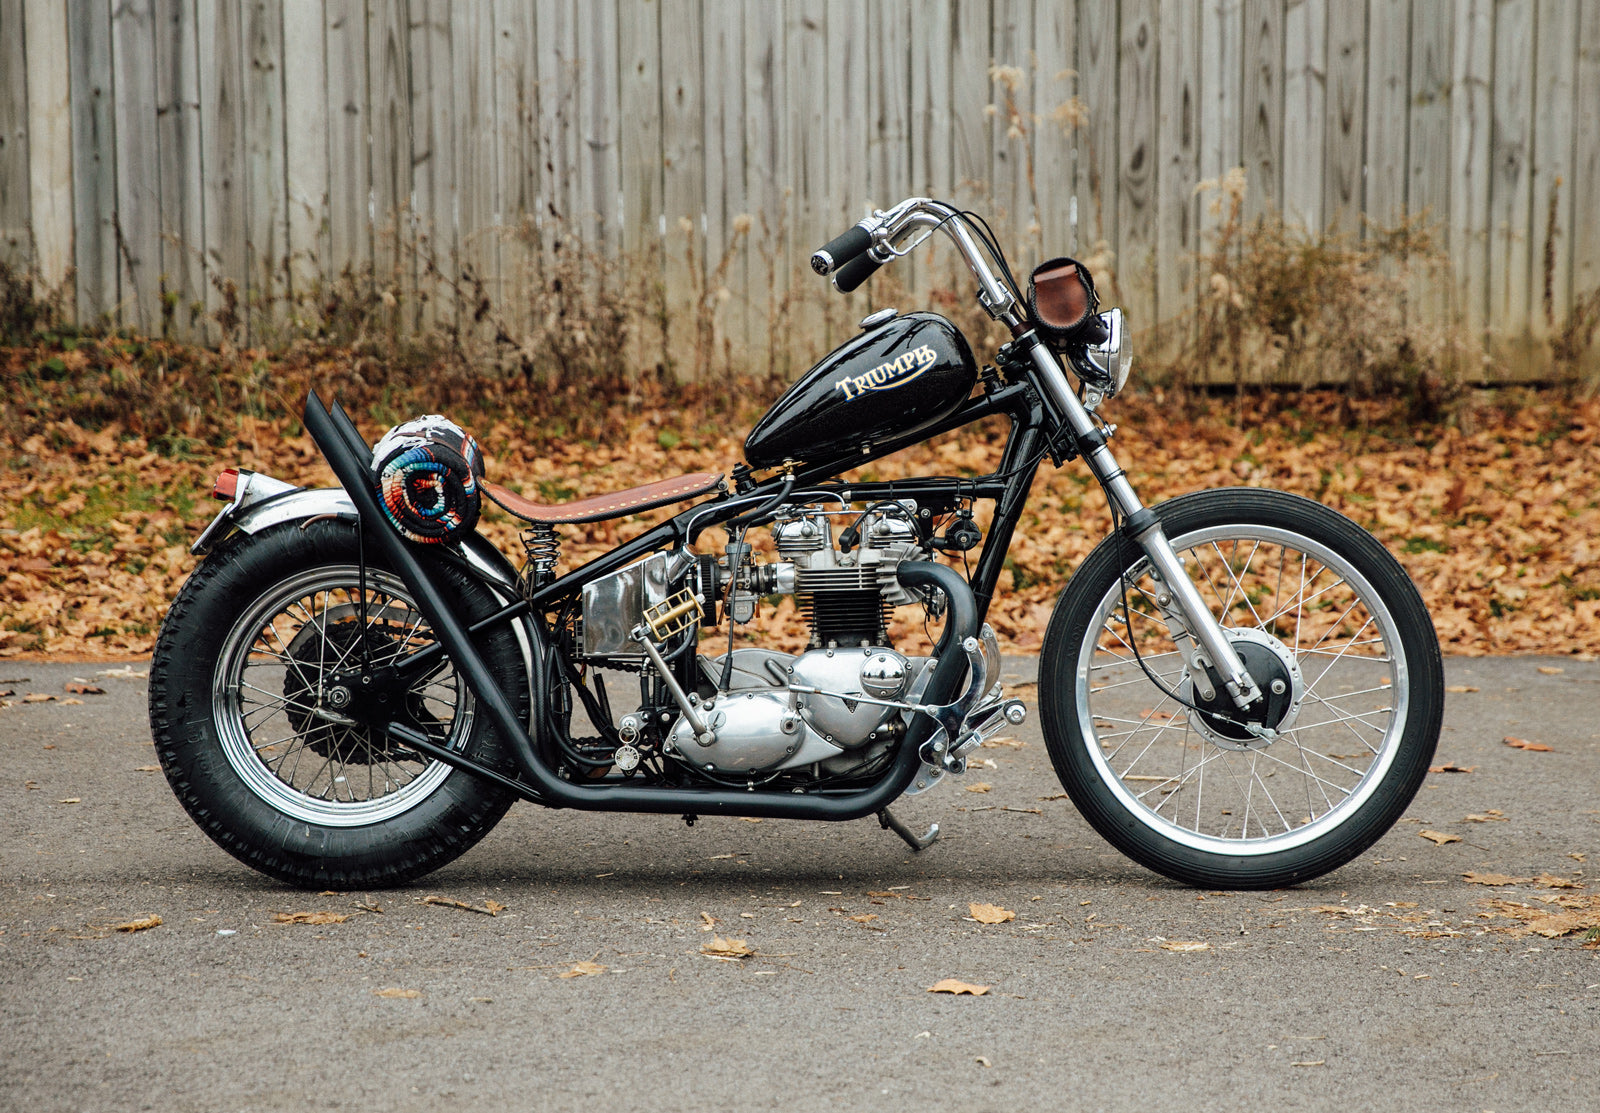 1968 Triumph TR6 Chopper Bobber Vintage Motorcycle Pittsburgh